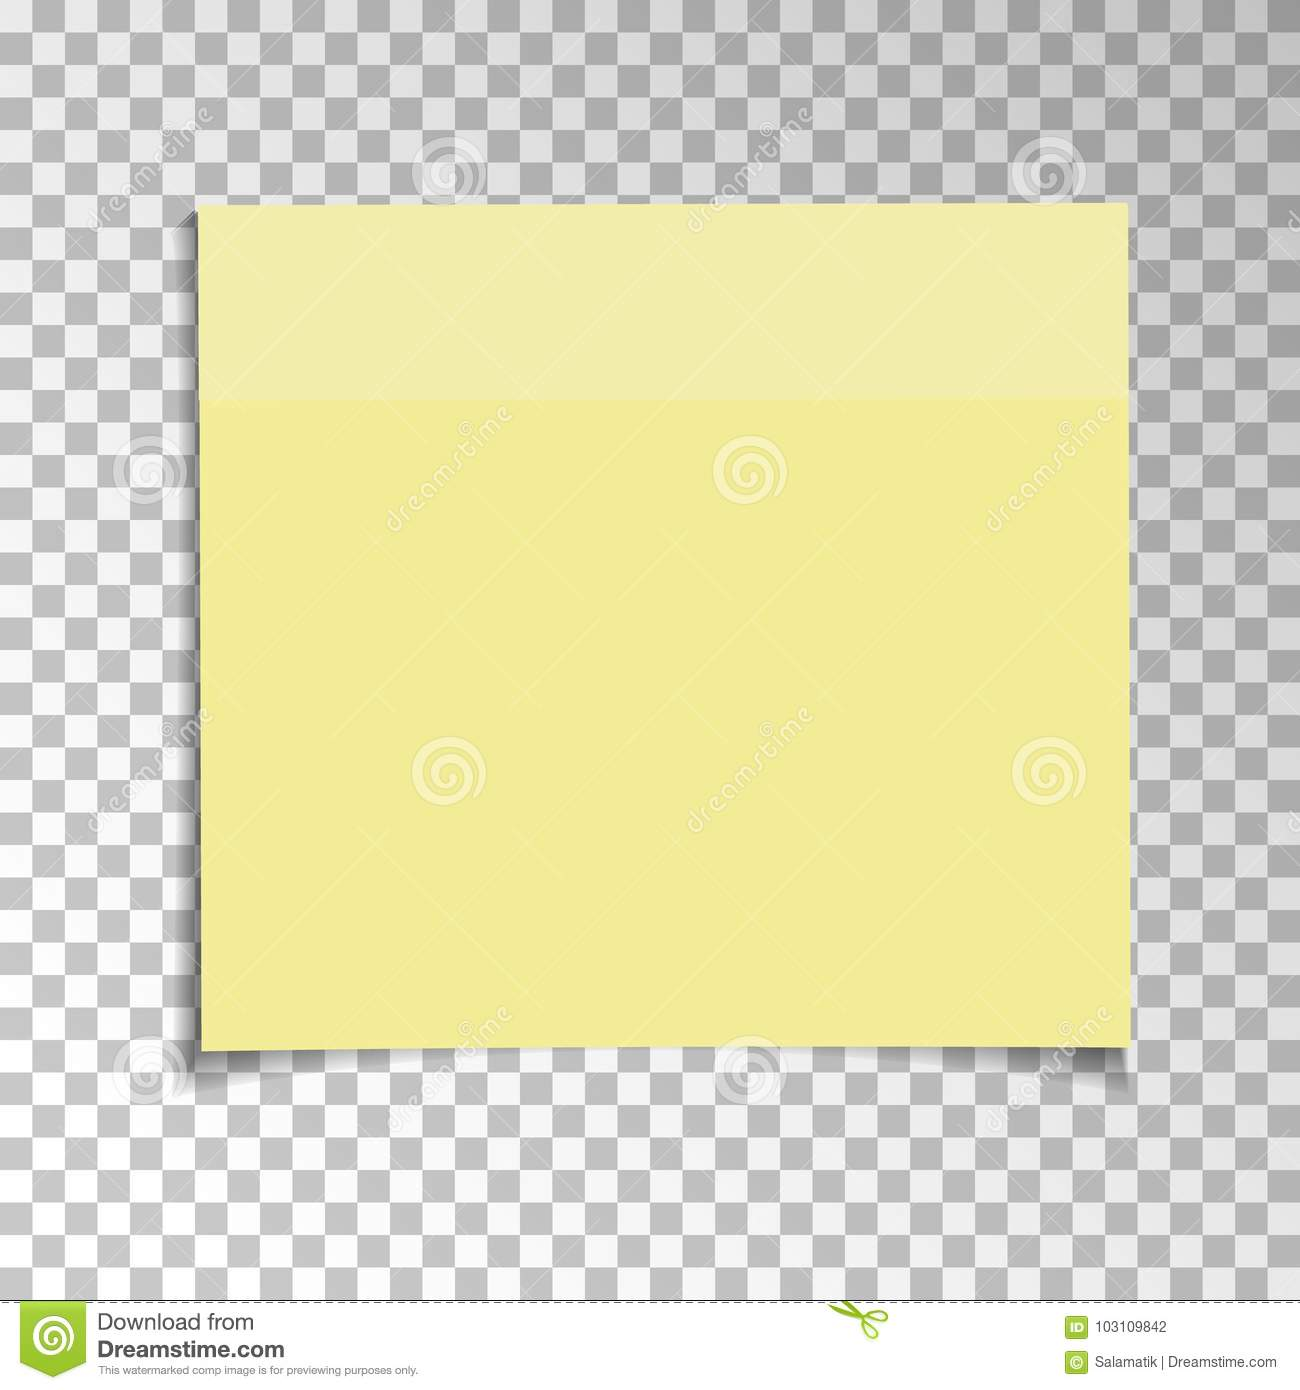 Office Yellow paper sticky note isolated on transparent background. Template for your projects. Vector illustration